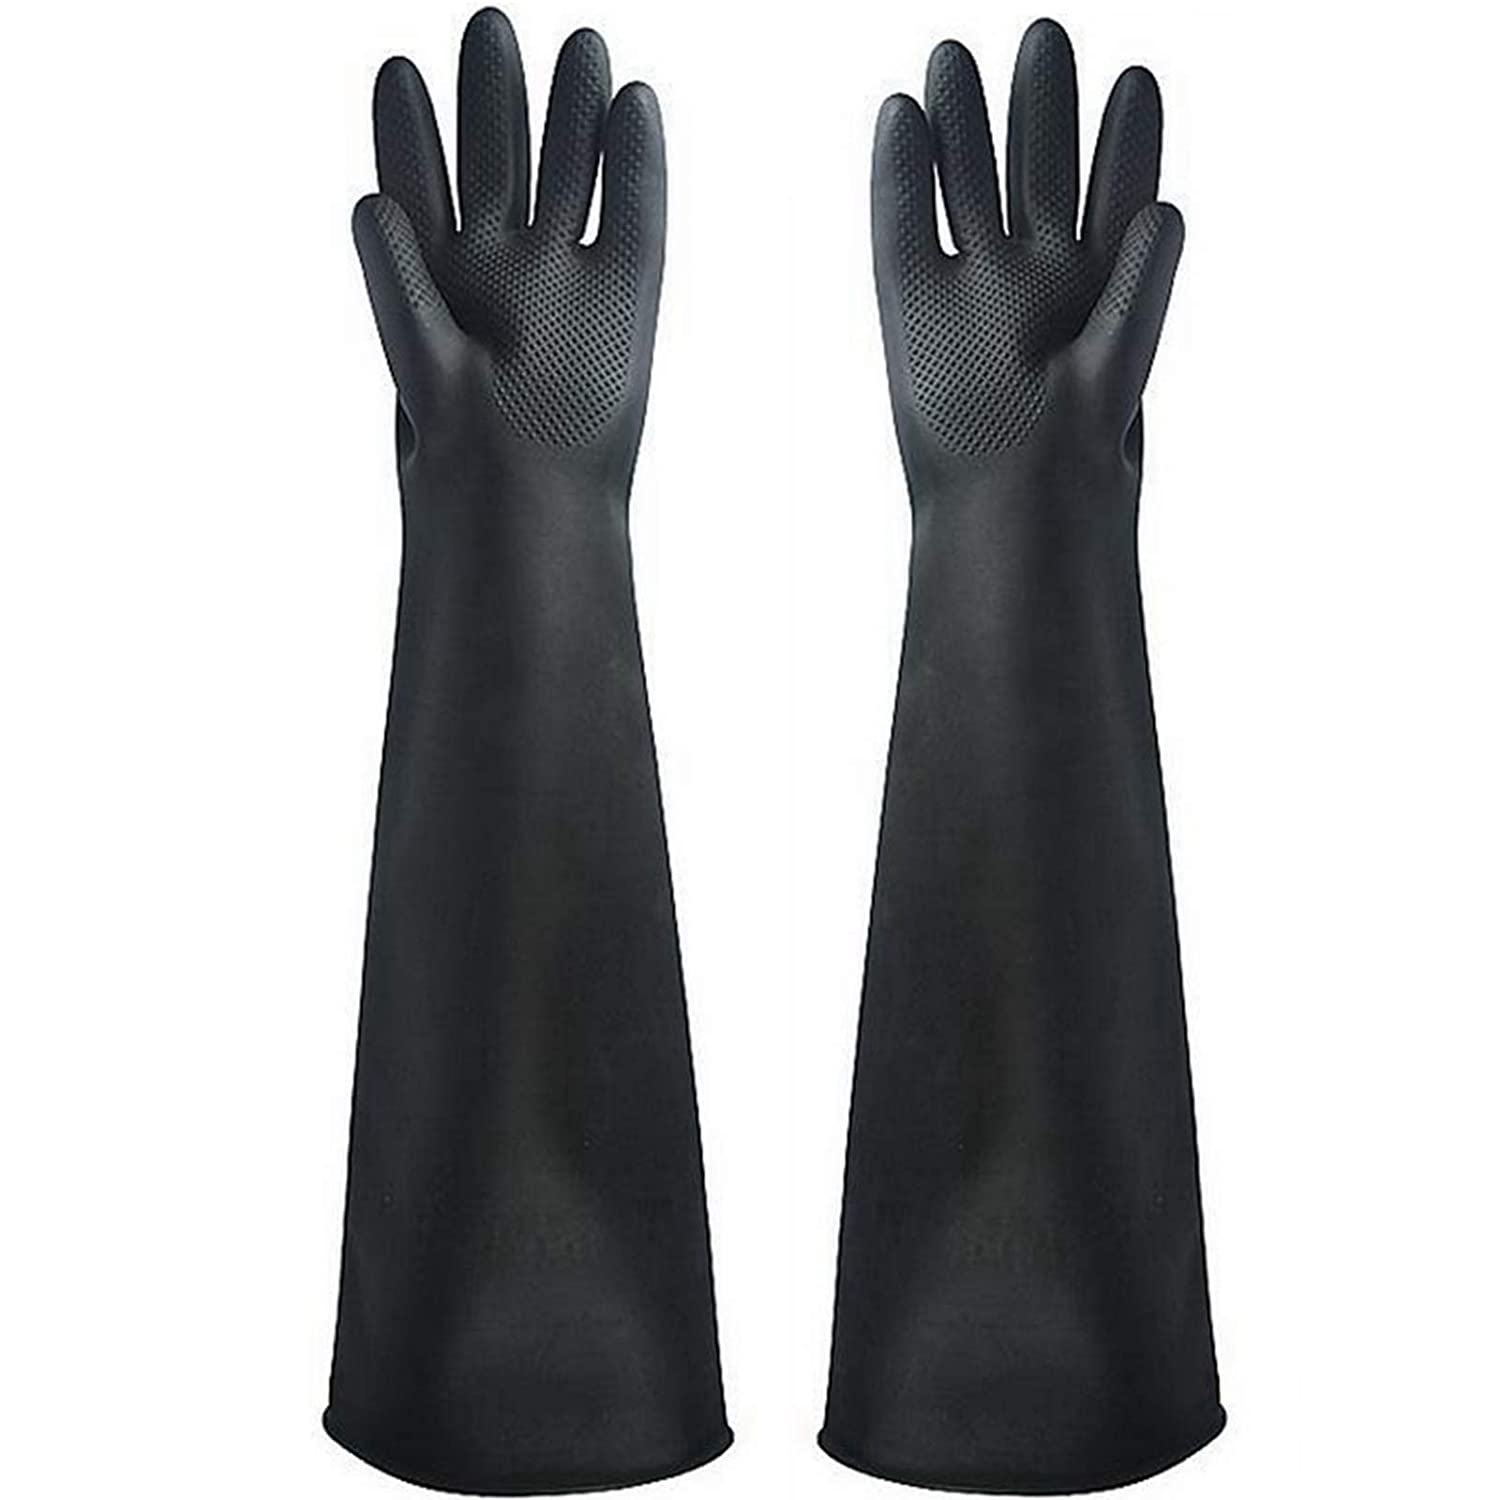 Working Long Cleaning Protective Safety Heavy Duty G Limited Special Price Work latest Rubber